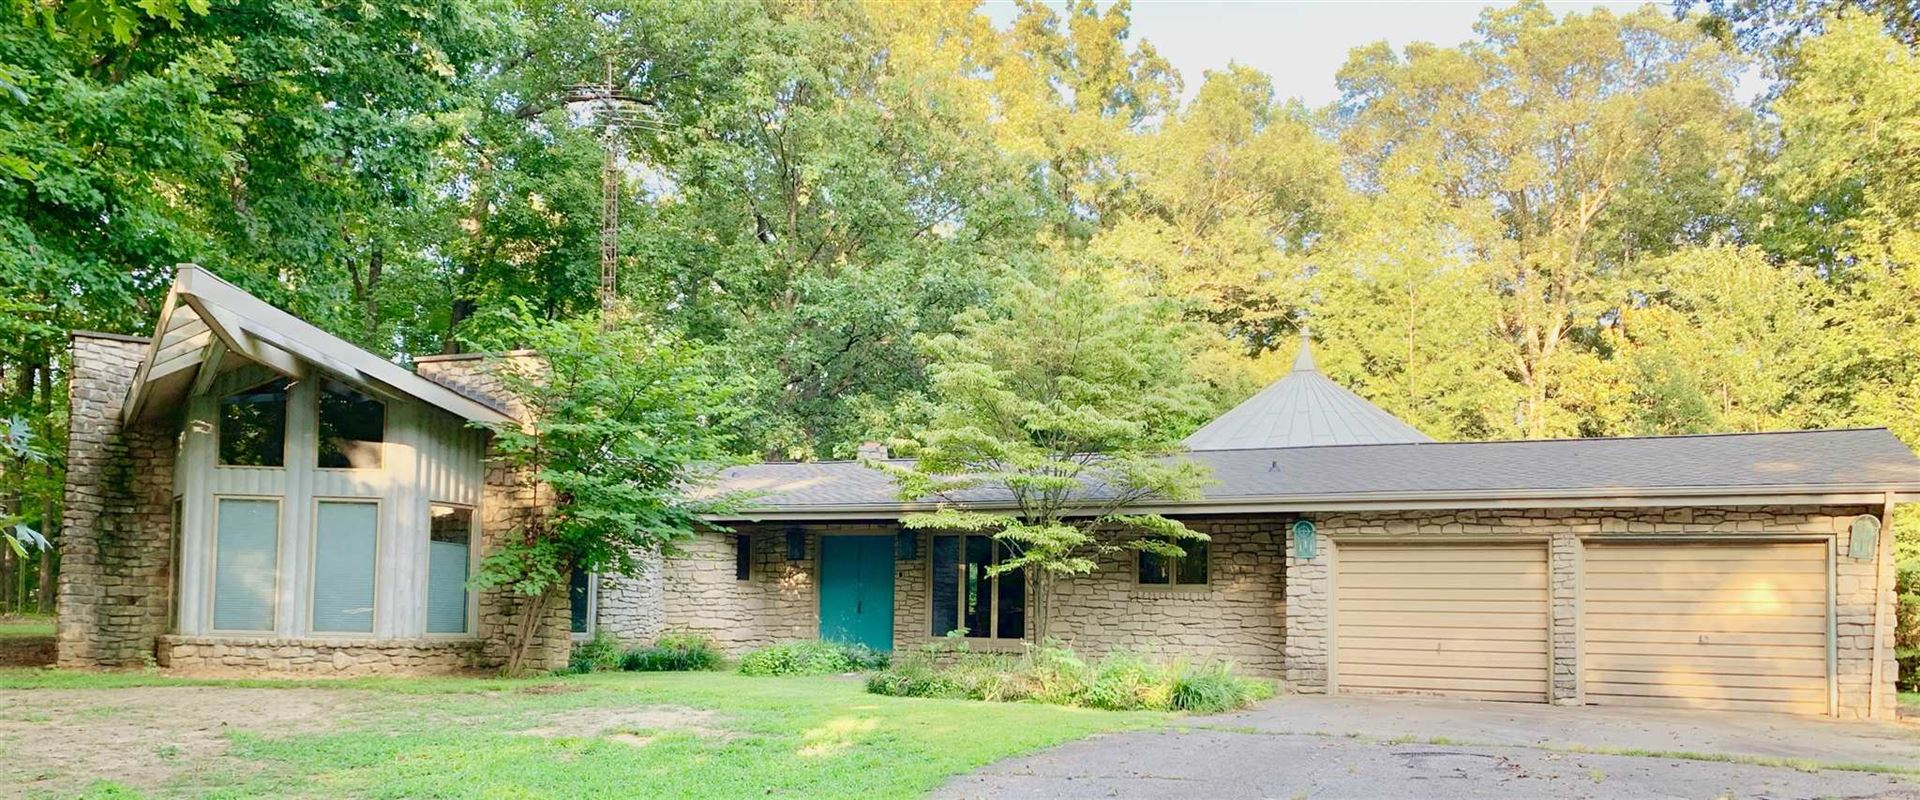 400 W First Street, Huntingburg, IN 47542 - MLS#: 201936277